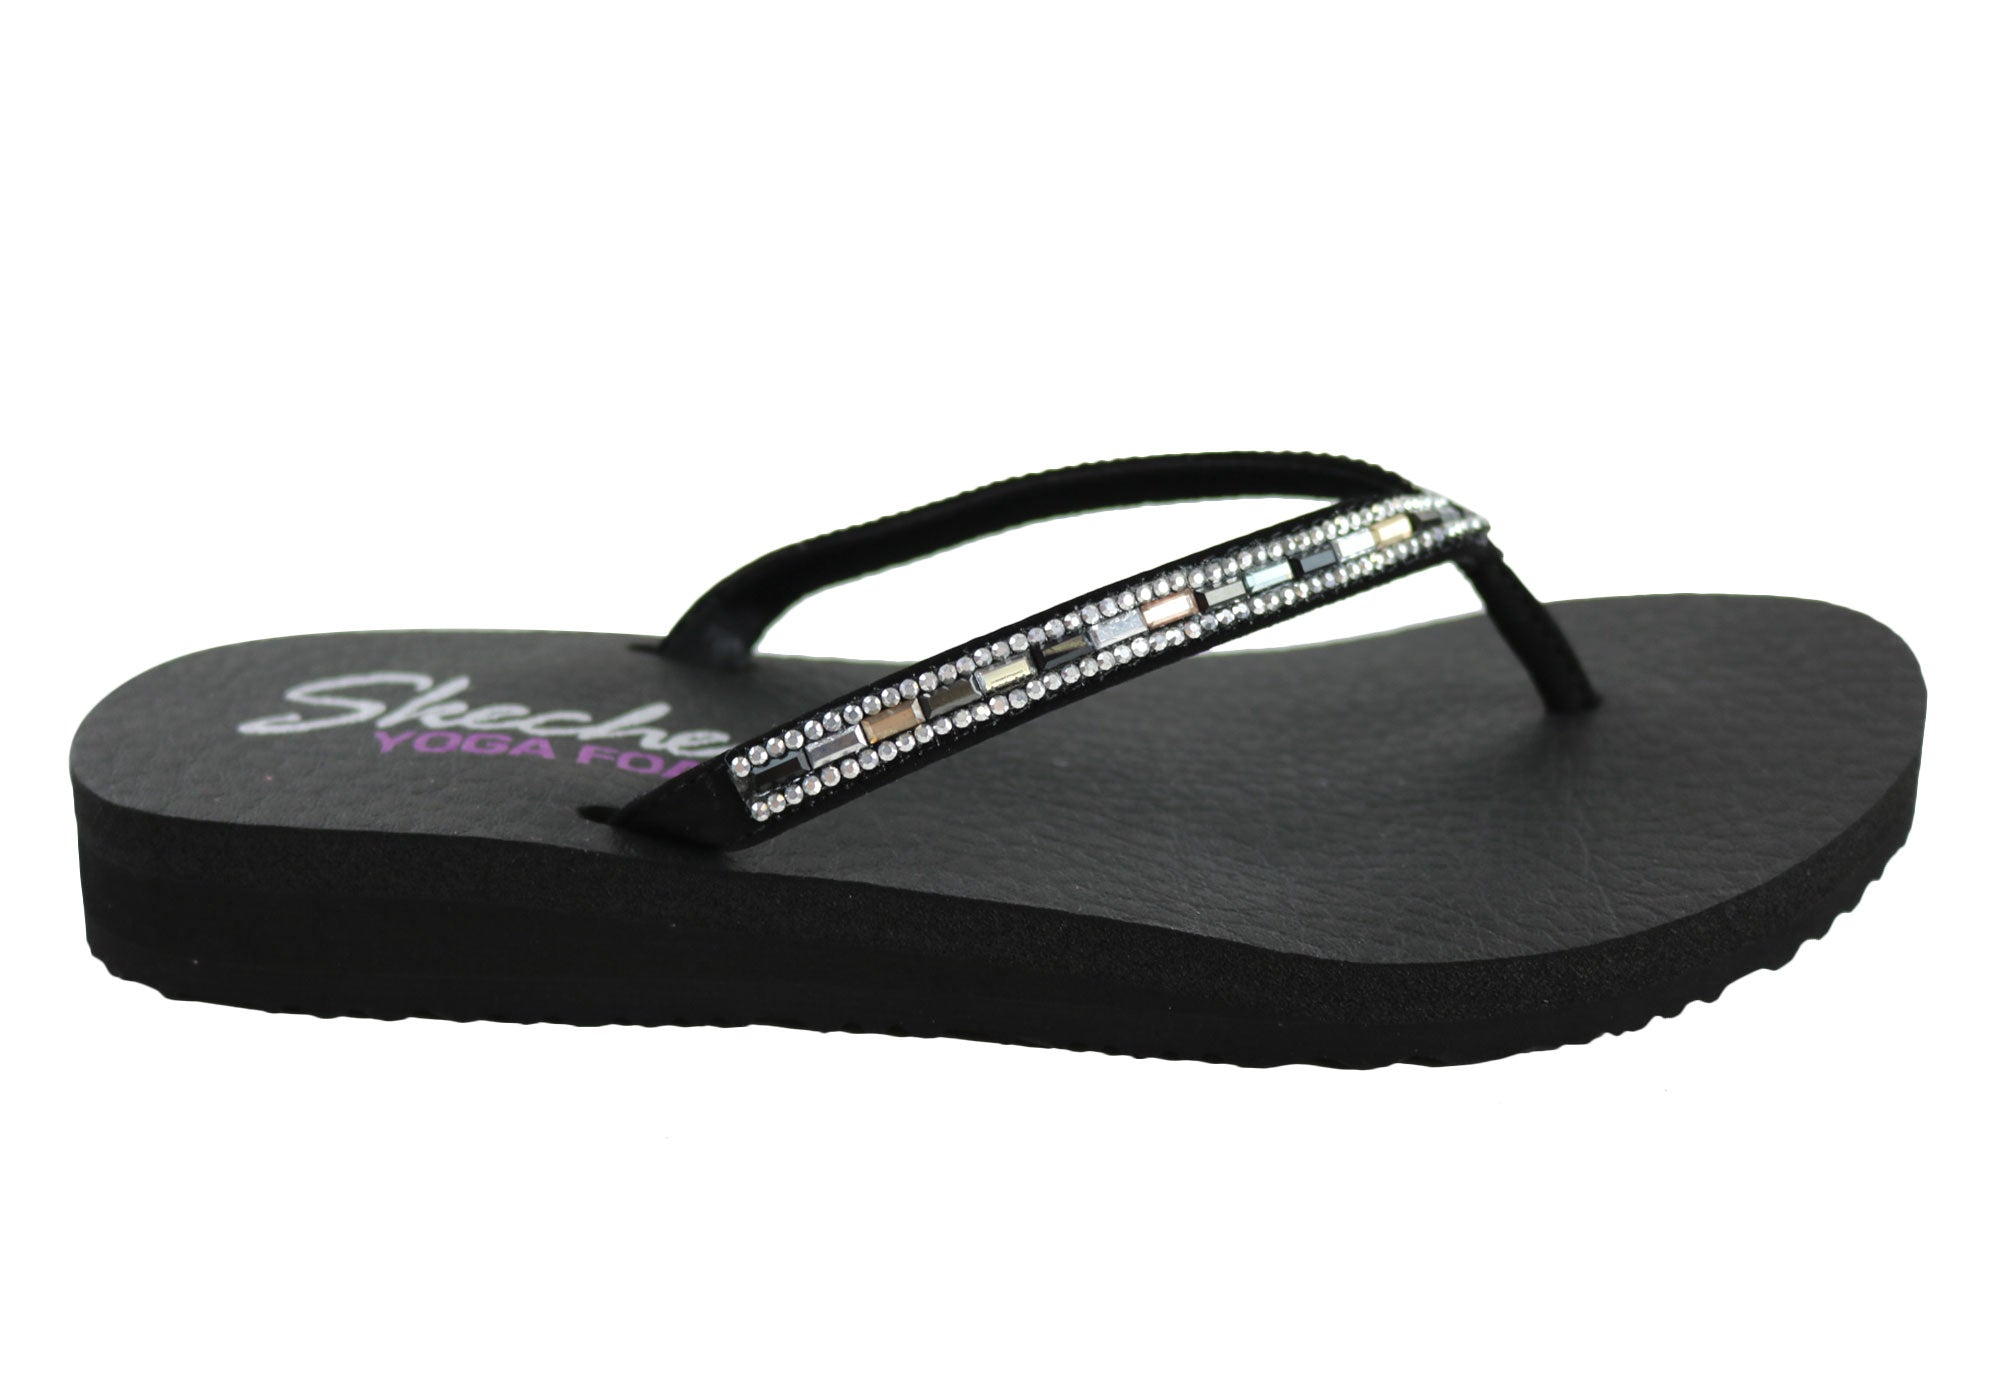 a353ae88c New Skechers Womens Meditation Desert Princess Comfort Flip Flops